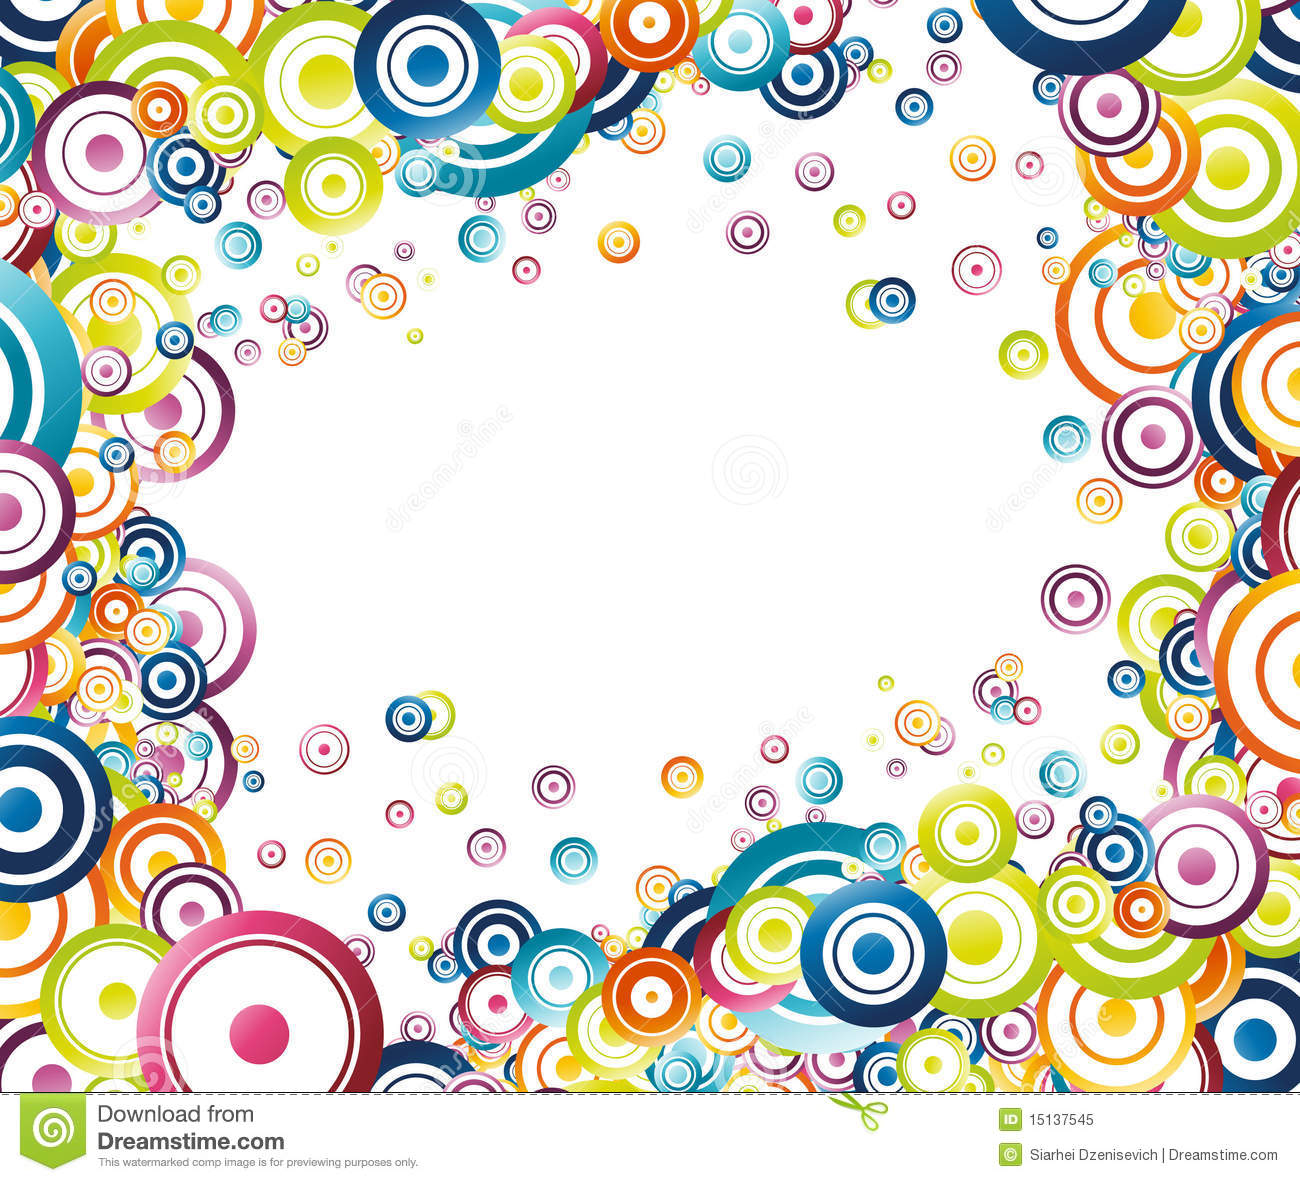 Colorful rainbow frame stock vector. Illustration of layout - 15137545